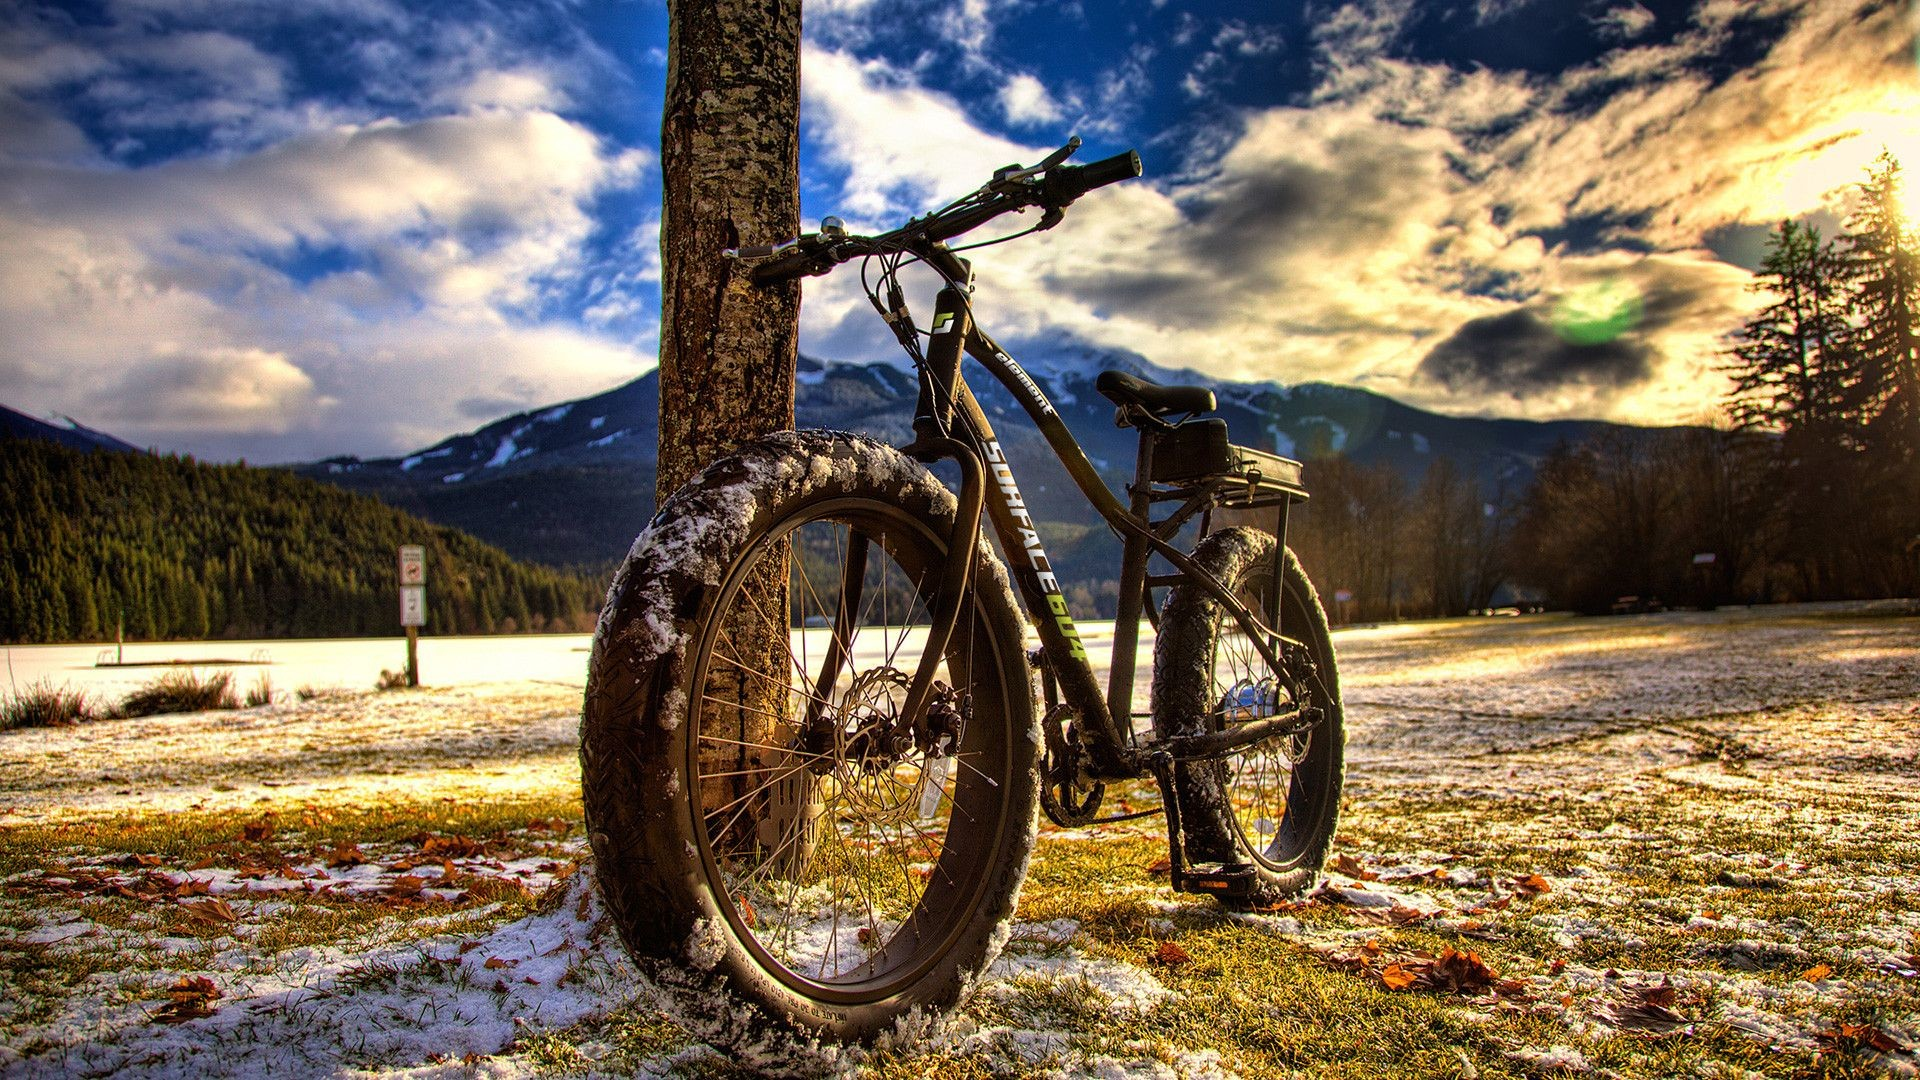 Res: 1920x1080, Hdr Mountain Bike Wallpaper 1600x900 Wallpaper Bike Wallpapers Free  Download Abyss Anime League Of Legends Hd Cars Naruto Windows 8 ~ Wallpedes    Free HD ...